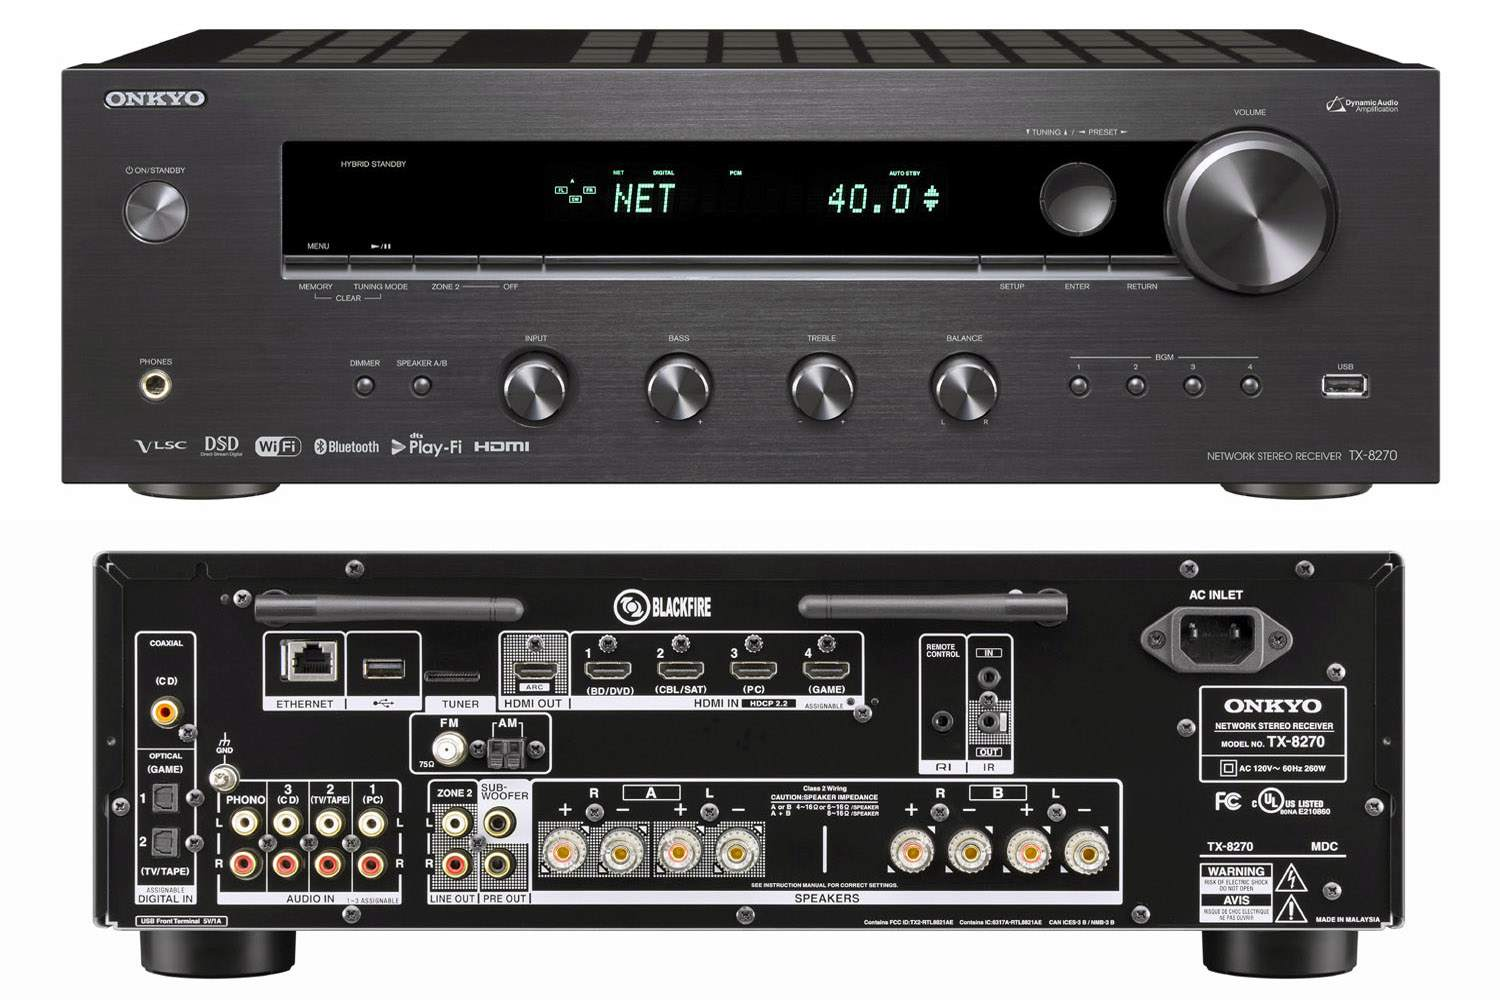 The Best Two-Channel Stereo ReceiversTo Buy in 2018